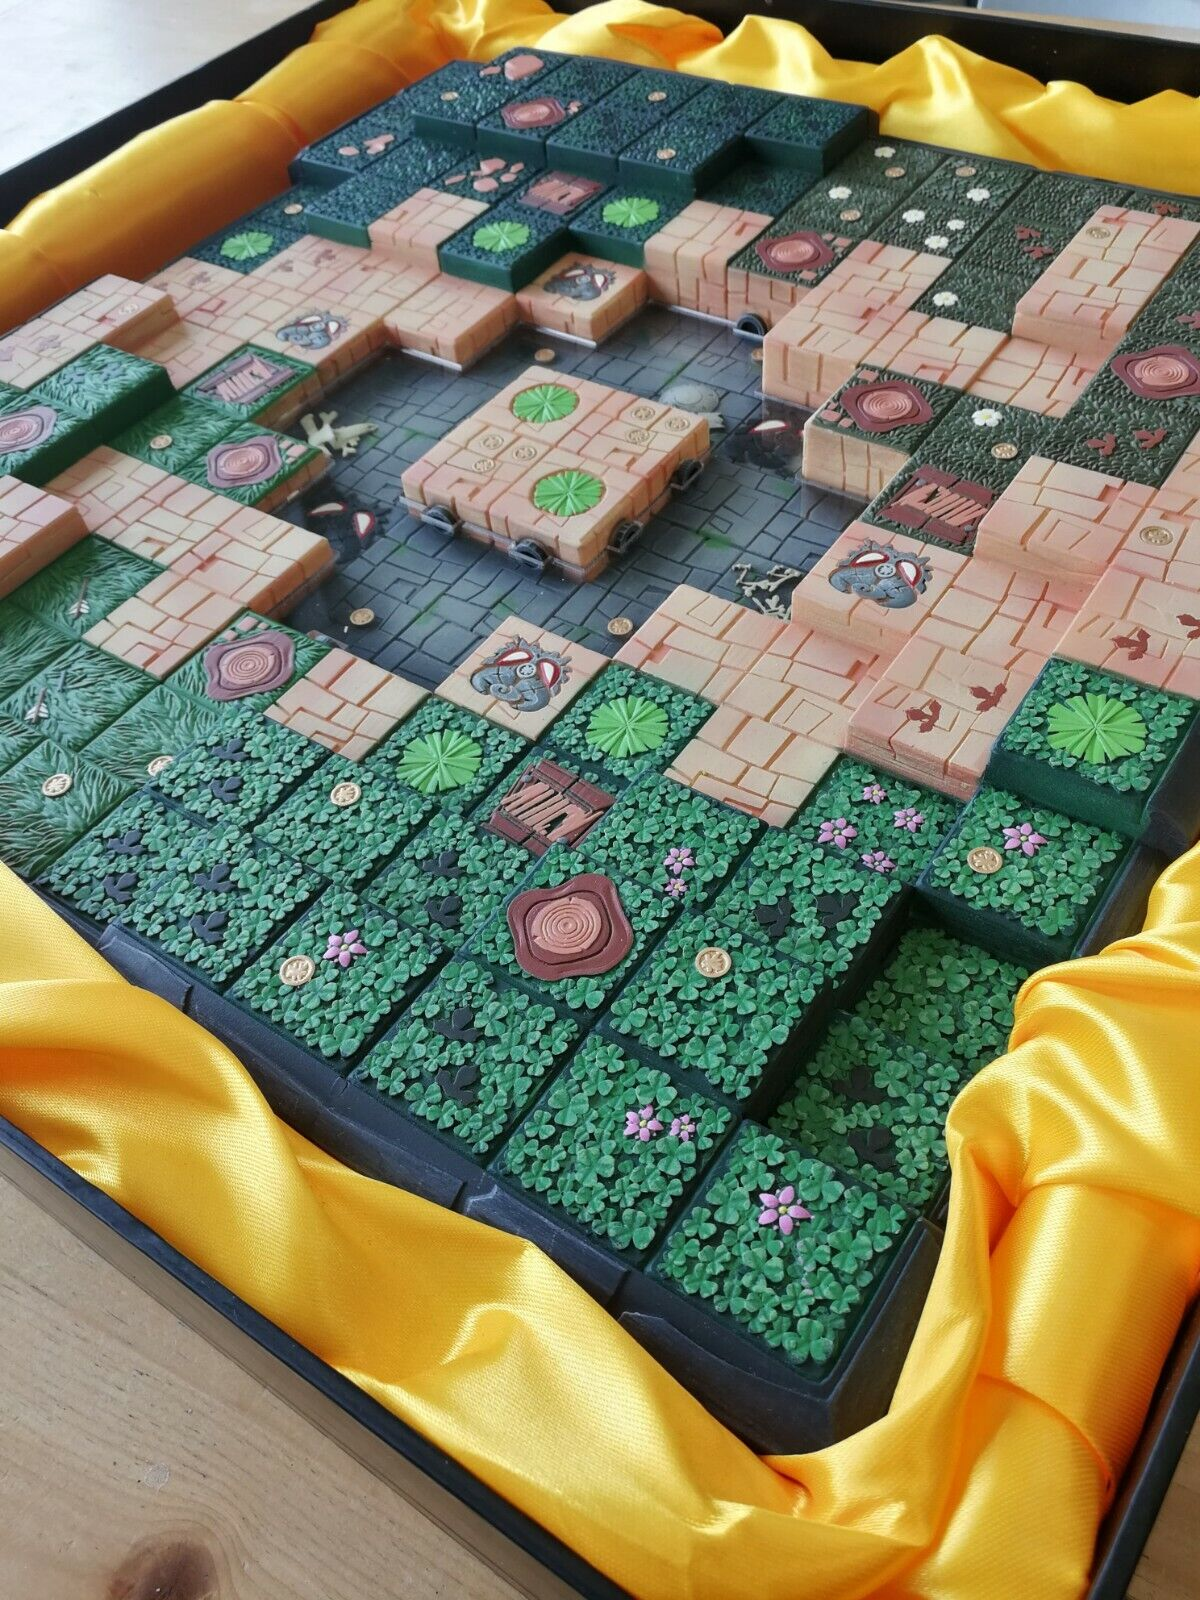 Krosmaster Resin championship gameboard -  limited 1000